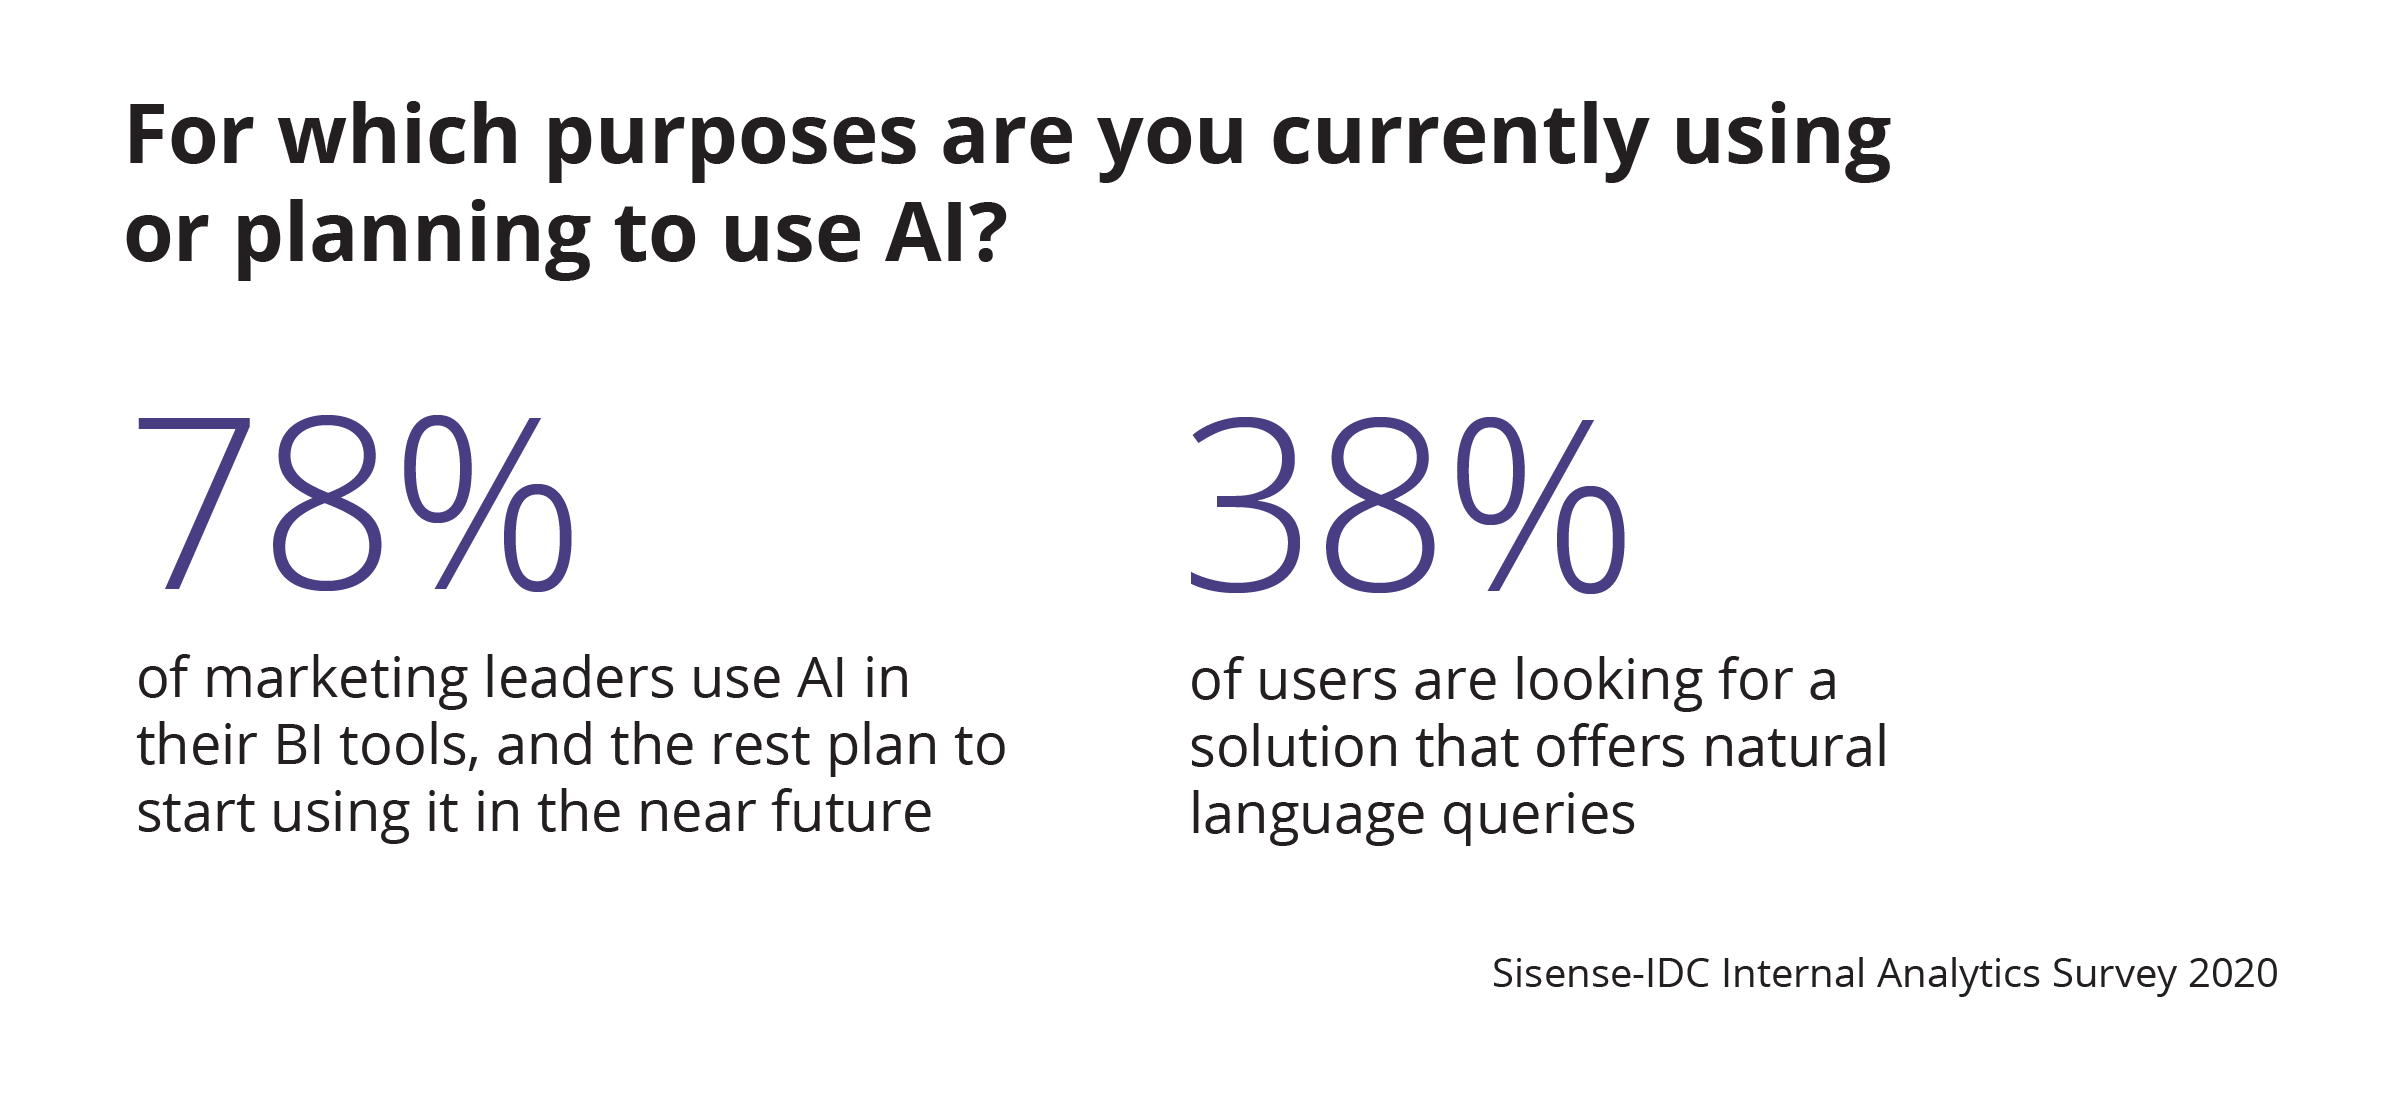 Planning to use AI?